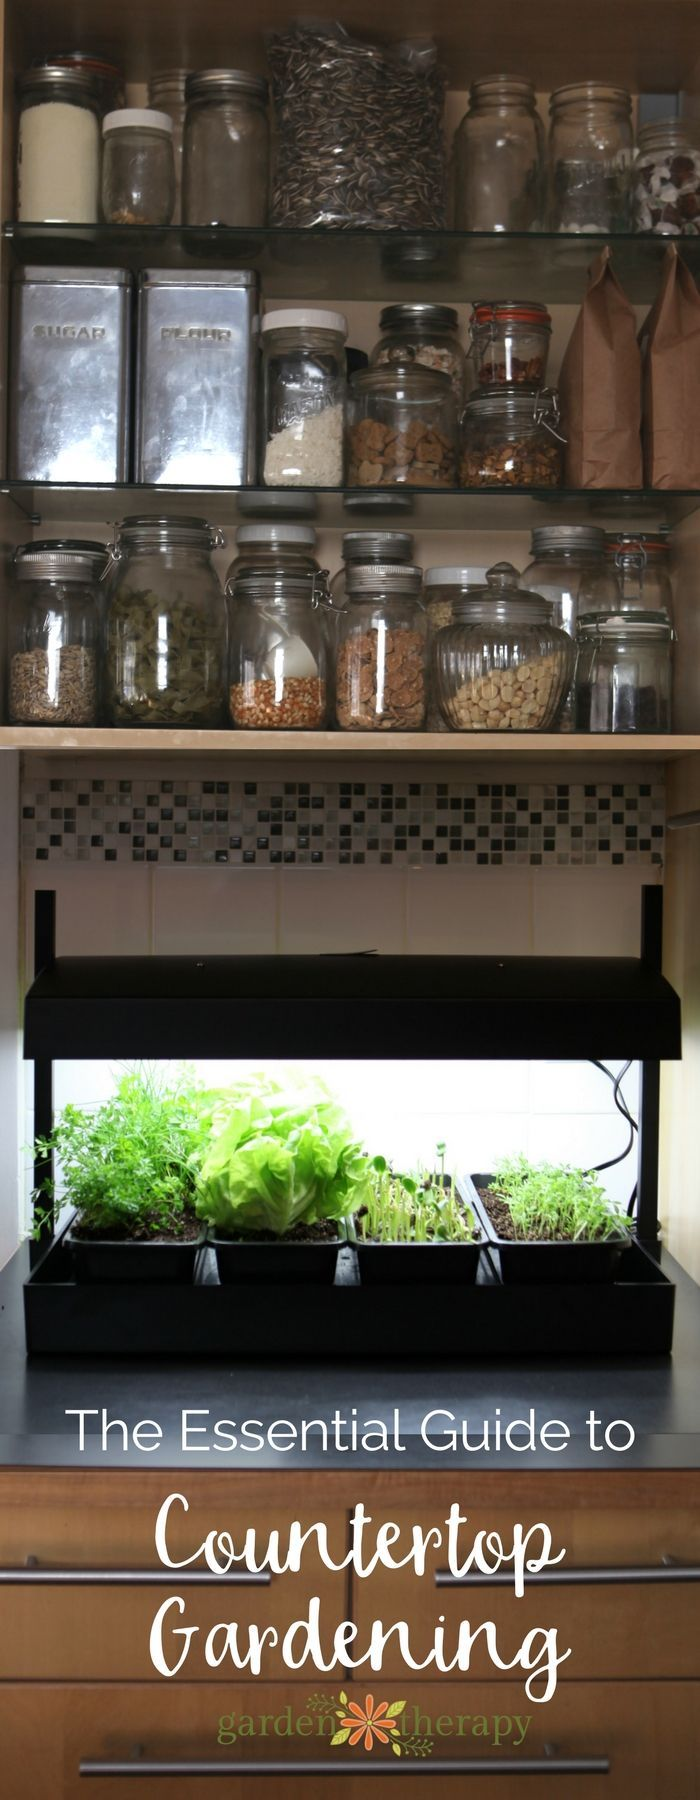 Countertop Gardening for Every Kitchen Growing food